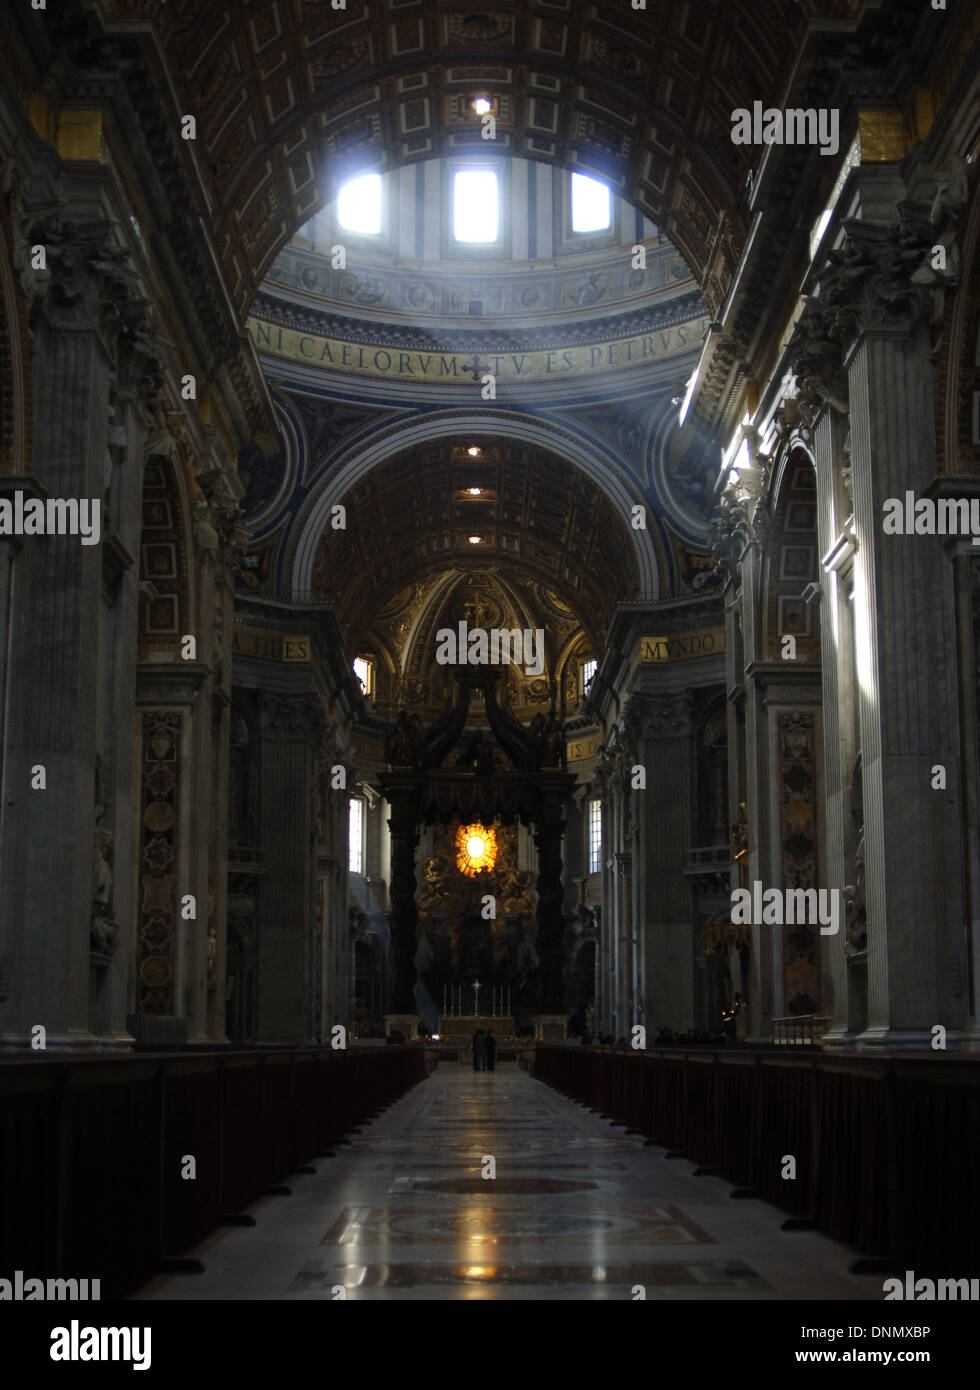 St. Peter's Basilica. Designed by Bramante, Michelangelo,, Maderno and Bernini. Maderno's nave and Bernini's baldacchino. - Stock Image